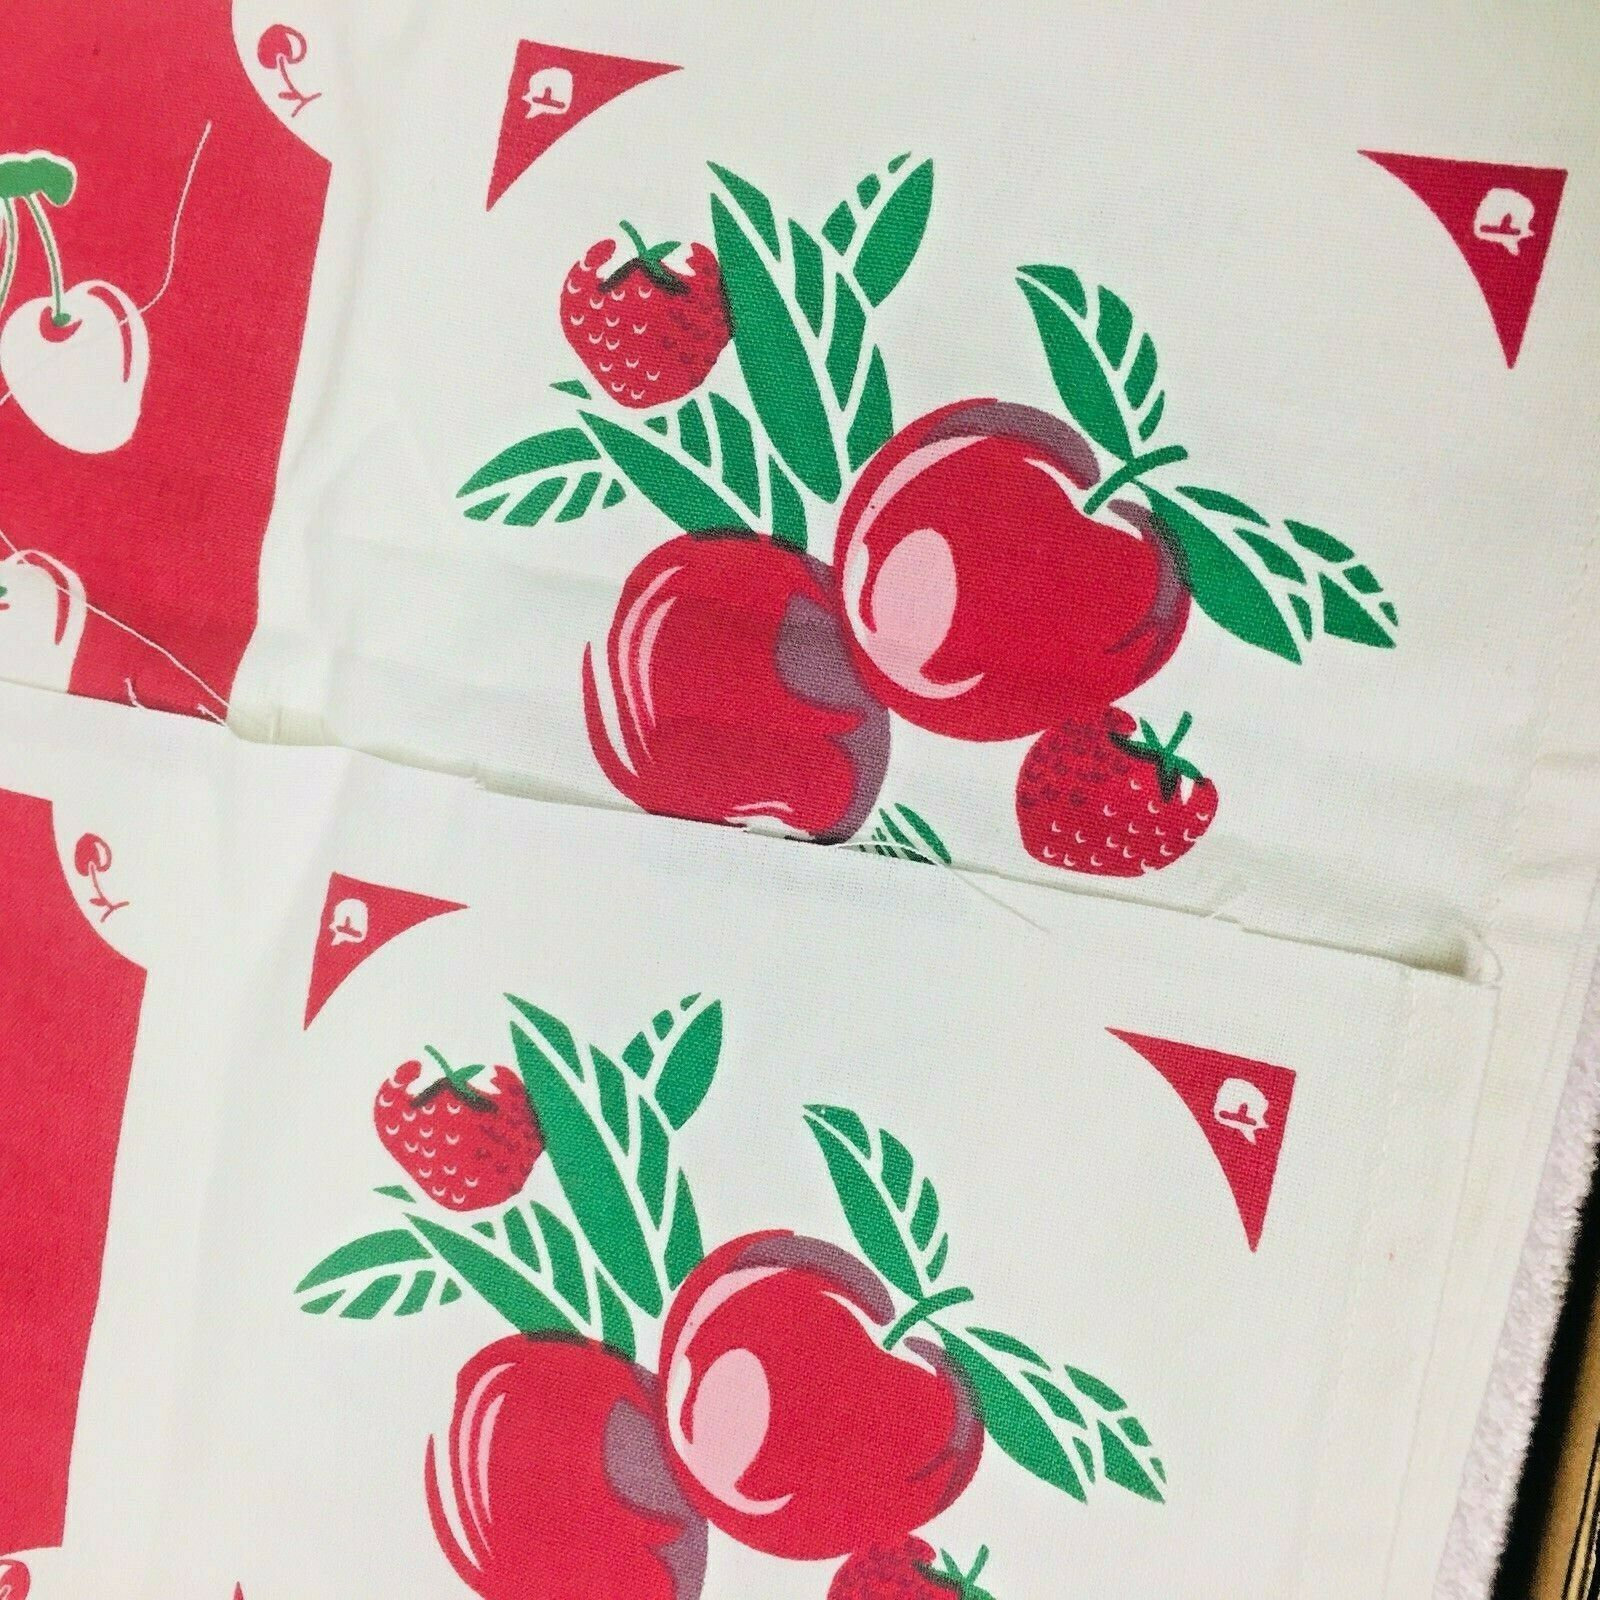 Reproduction Kitchen Toweling Towel Fabric Unsewn Red Cream Green Cherries Apple image 5